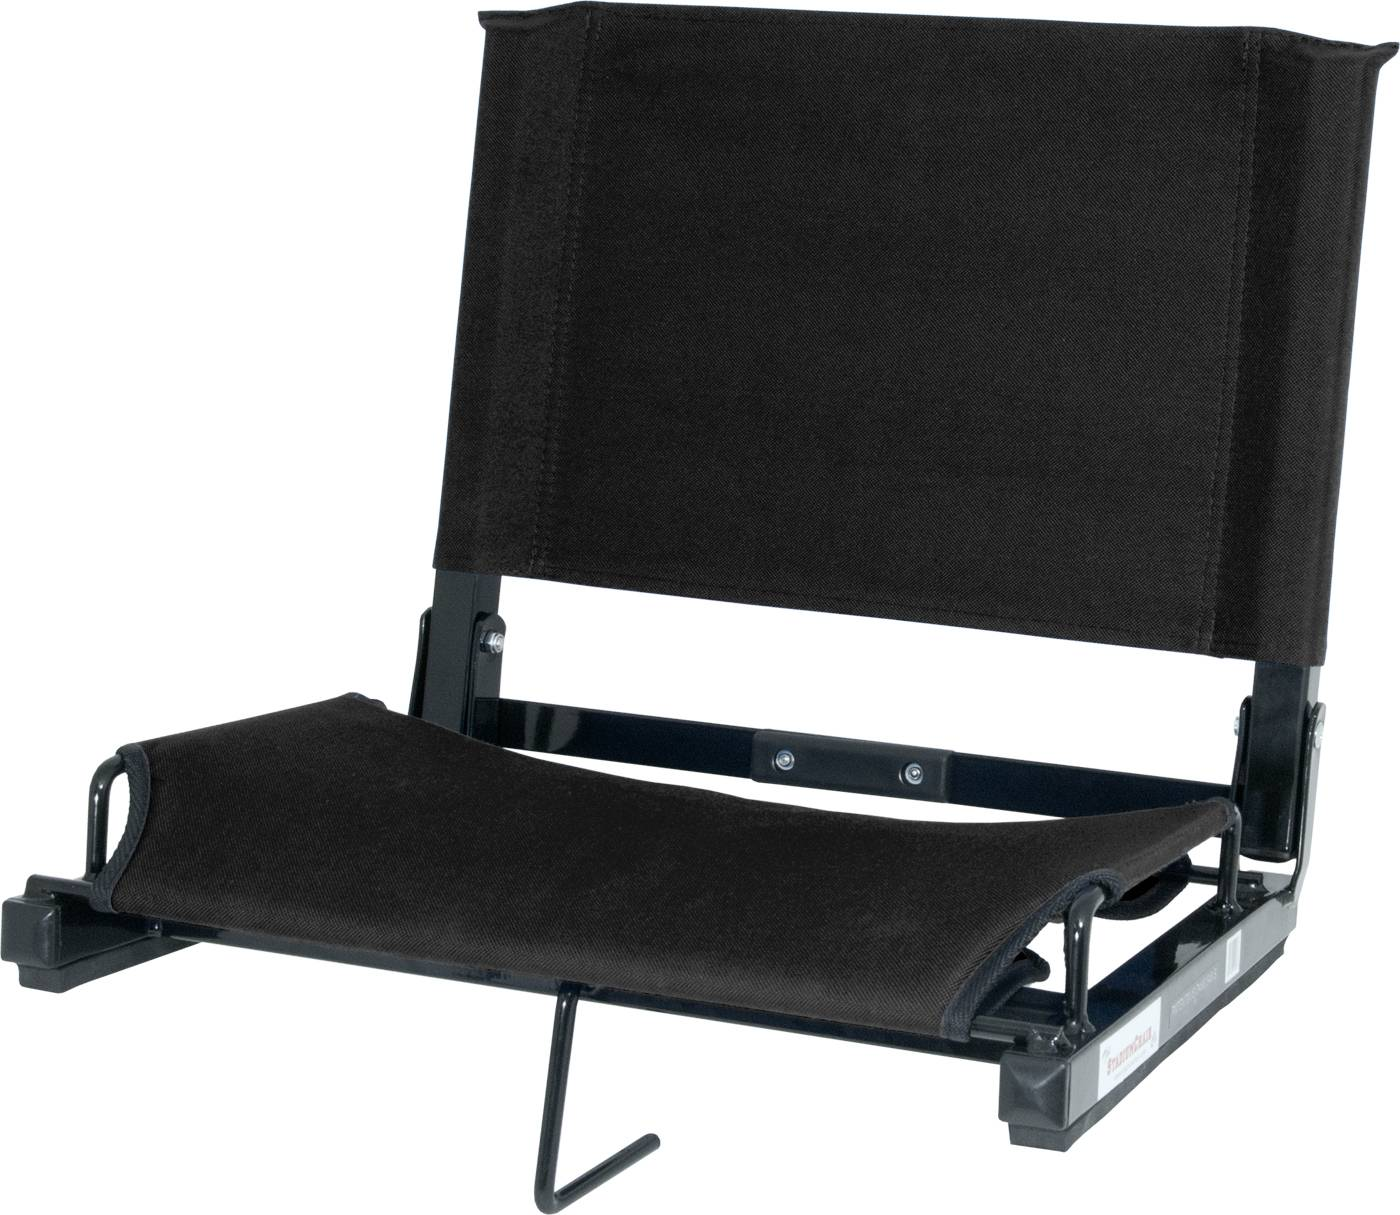 Stadium Chairs Stadium Chair And Stadium Bleacher Chairs Sportsunlimited